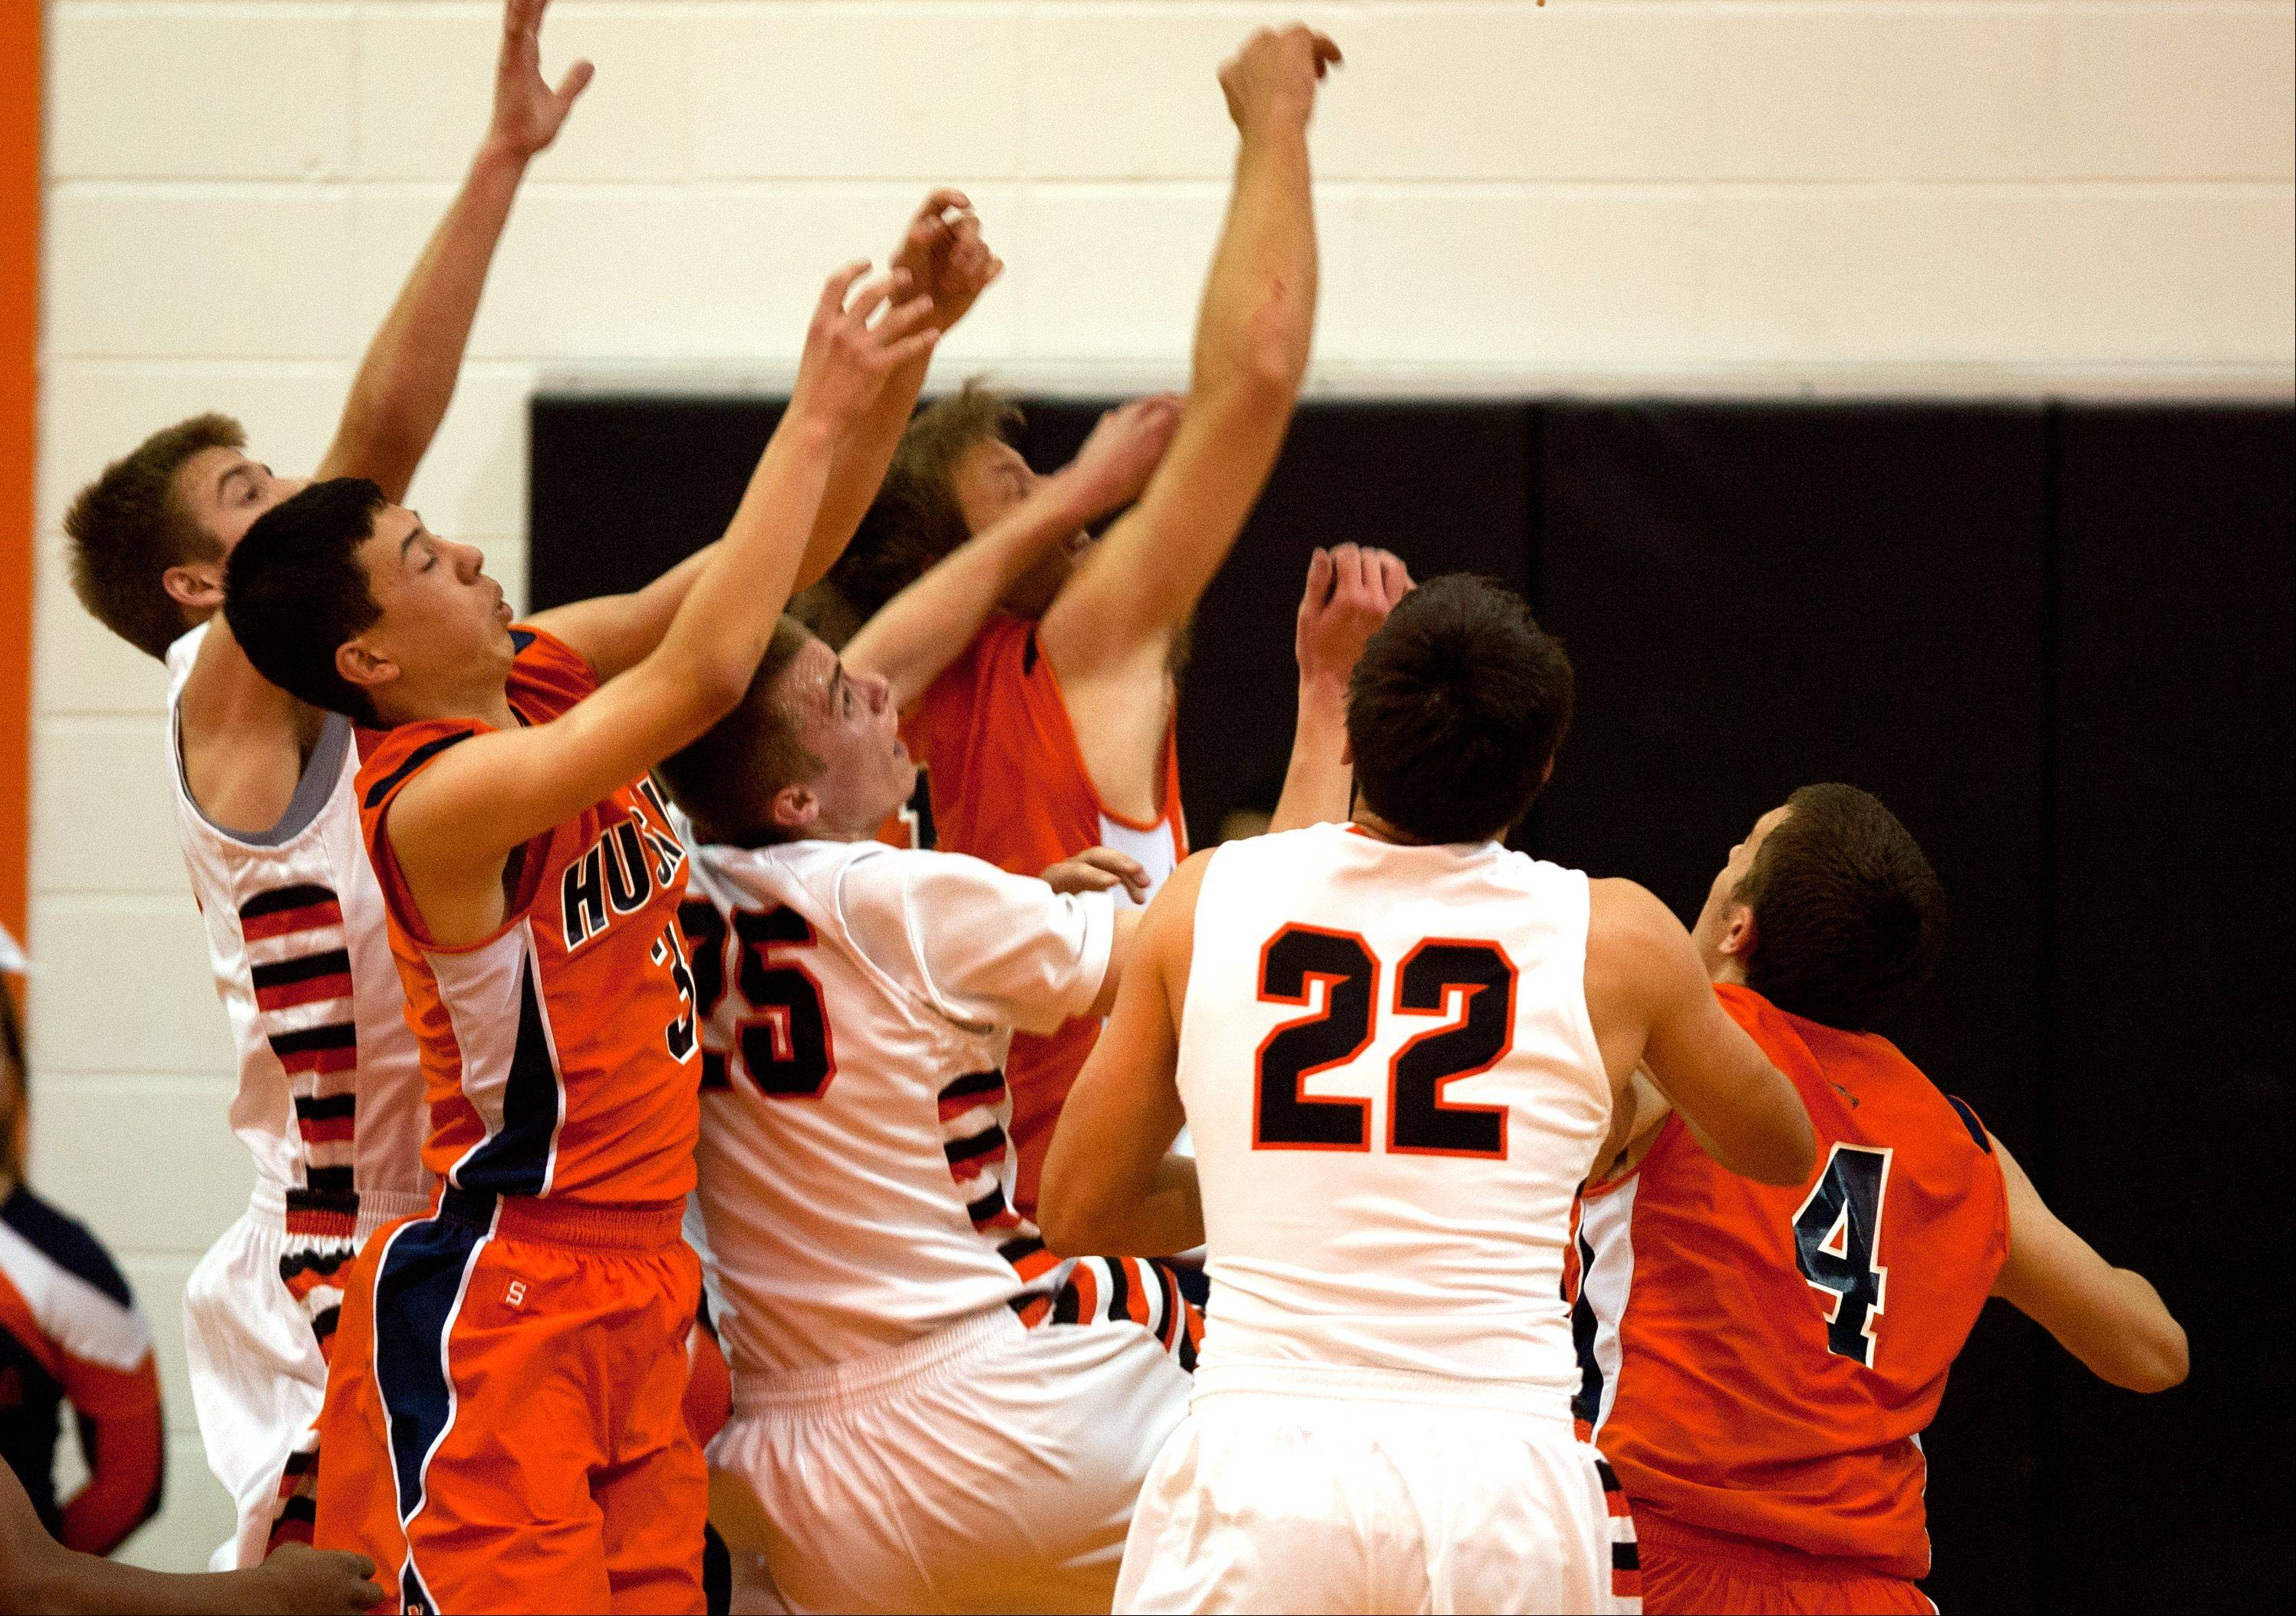 Naperville North and Wheaton Warrenville South players fight for a rebound.